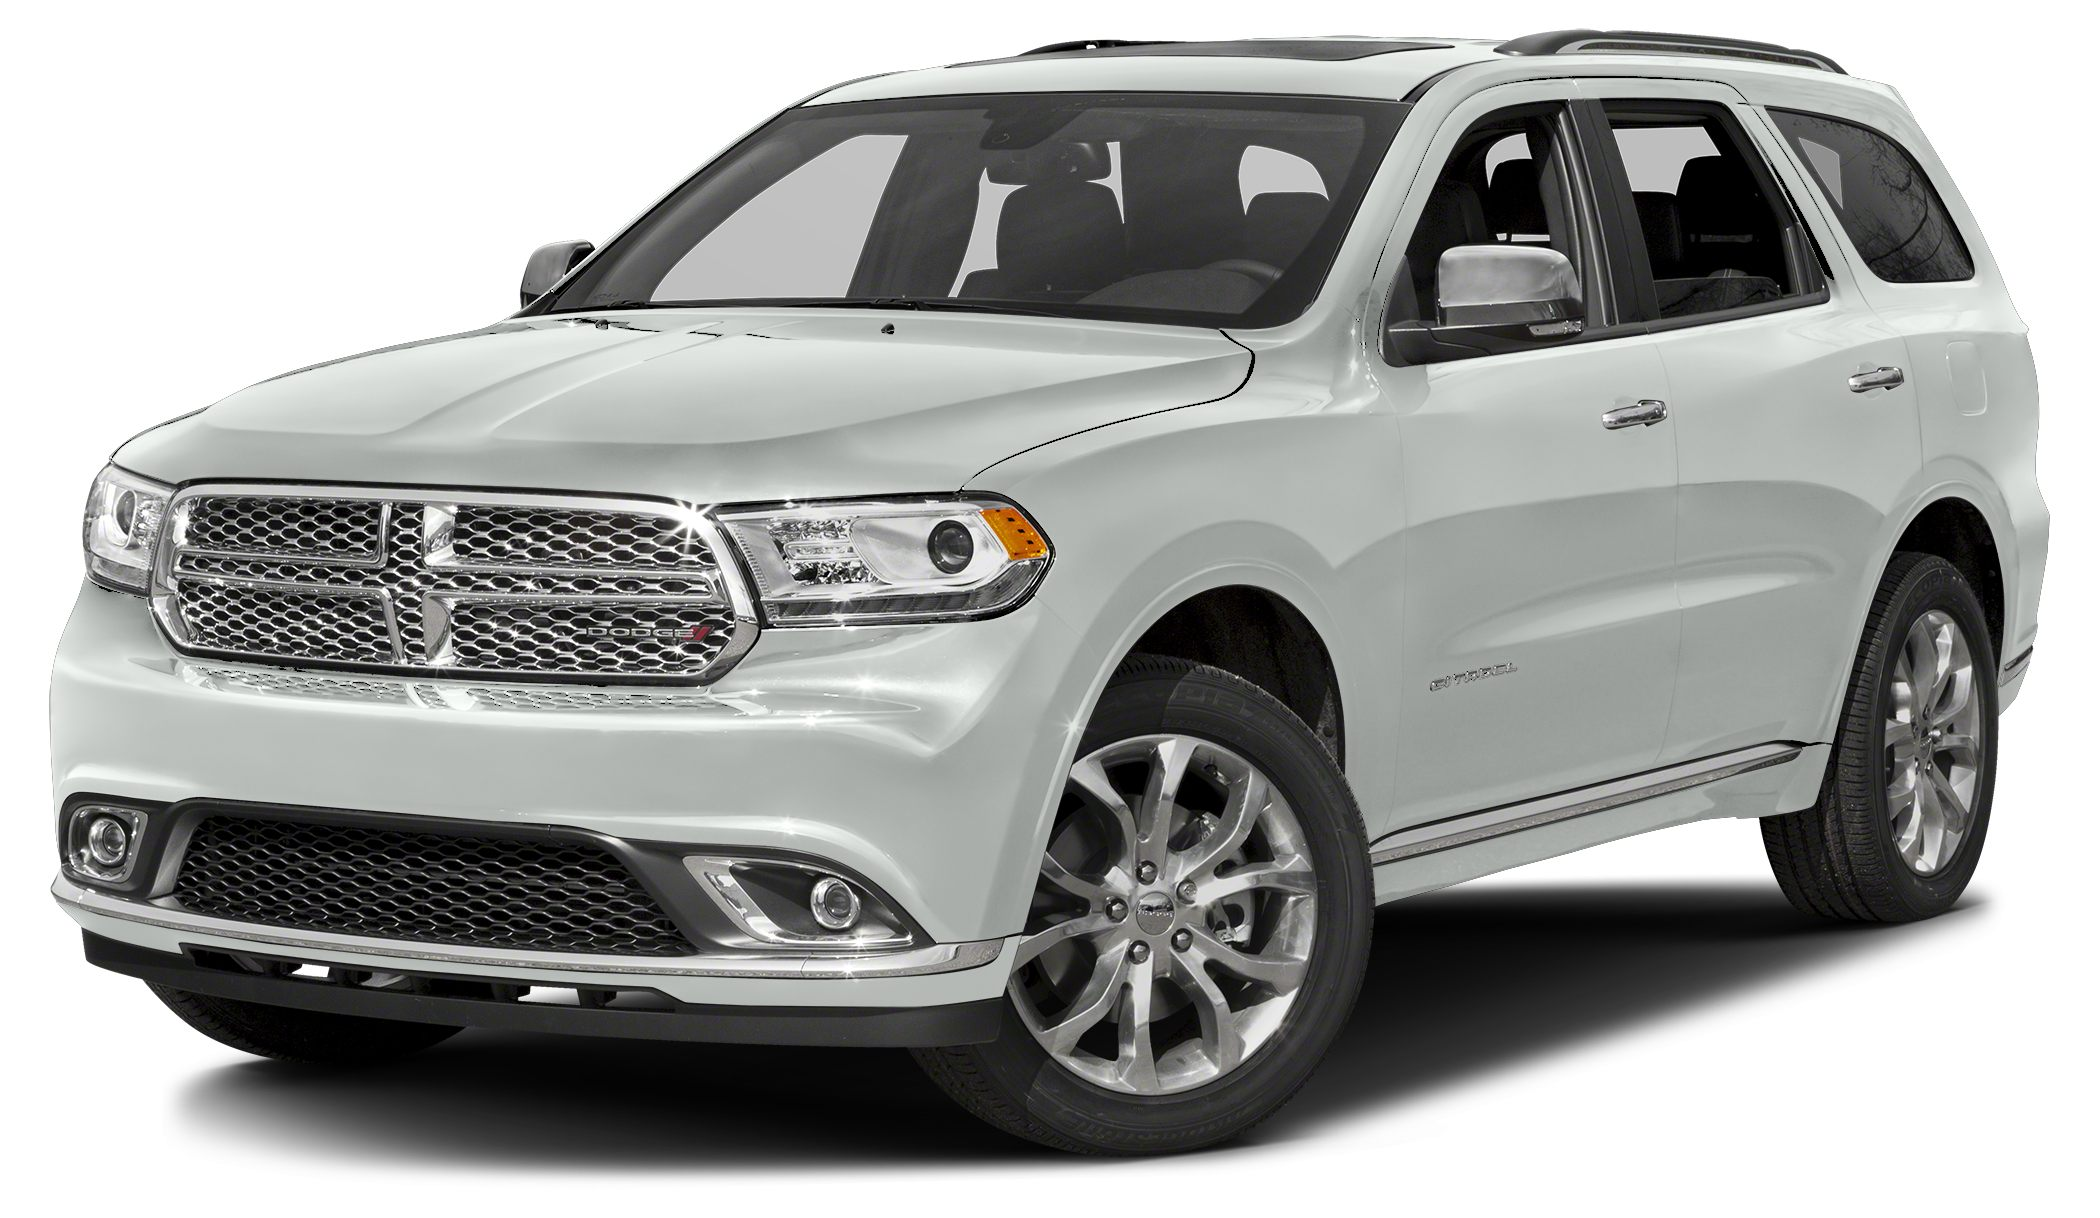 2015 Dodge Durango Citadel CARFAX 1-Owner Spotless FUEL EFFICIENT 24 MPG Hwy17 MPG City Moonro